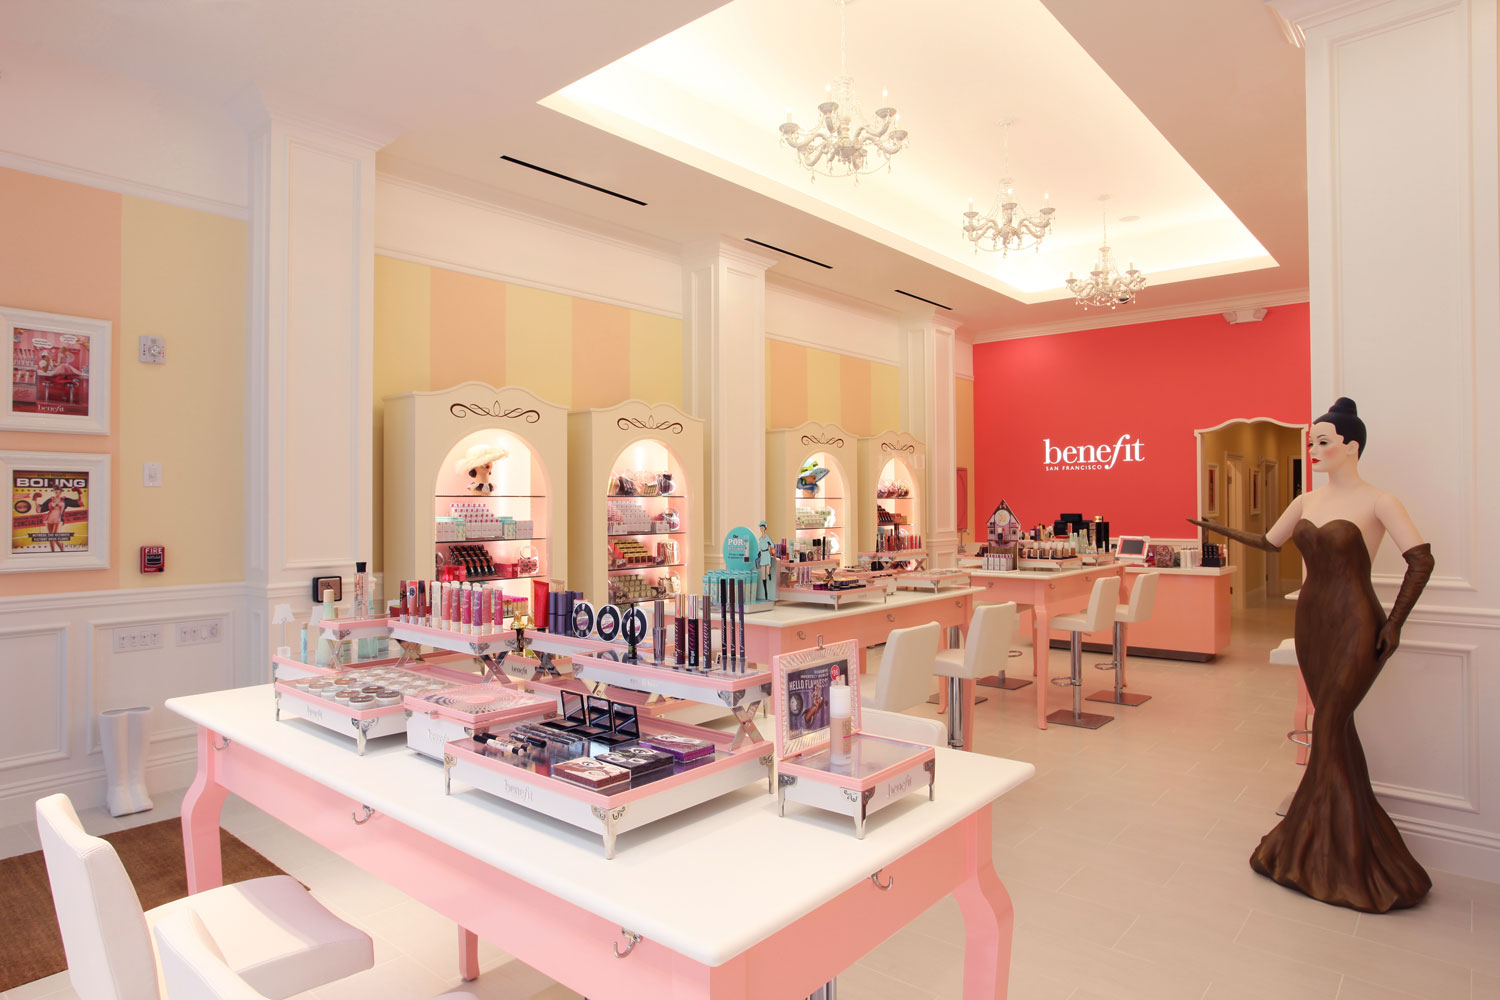 benefit-cosmetics-main-room_1000px